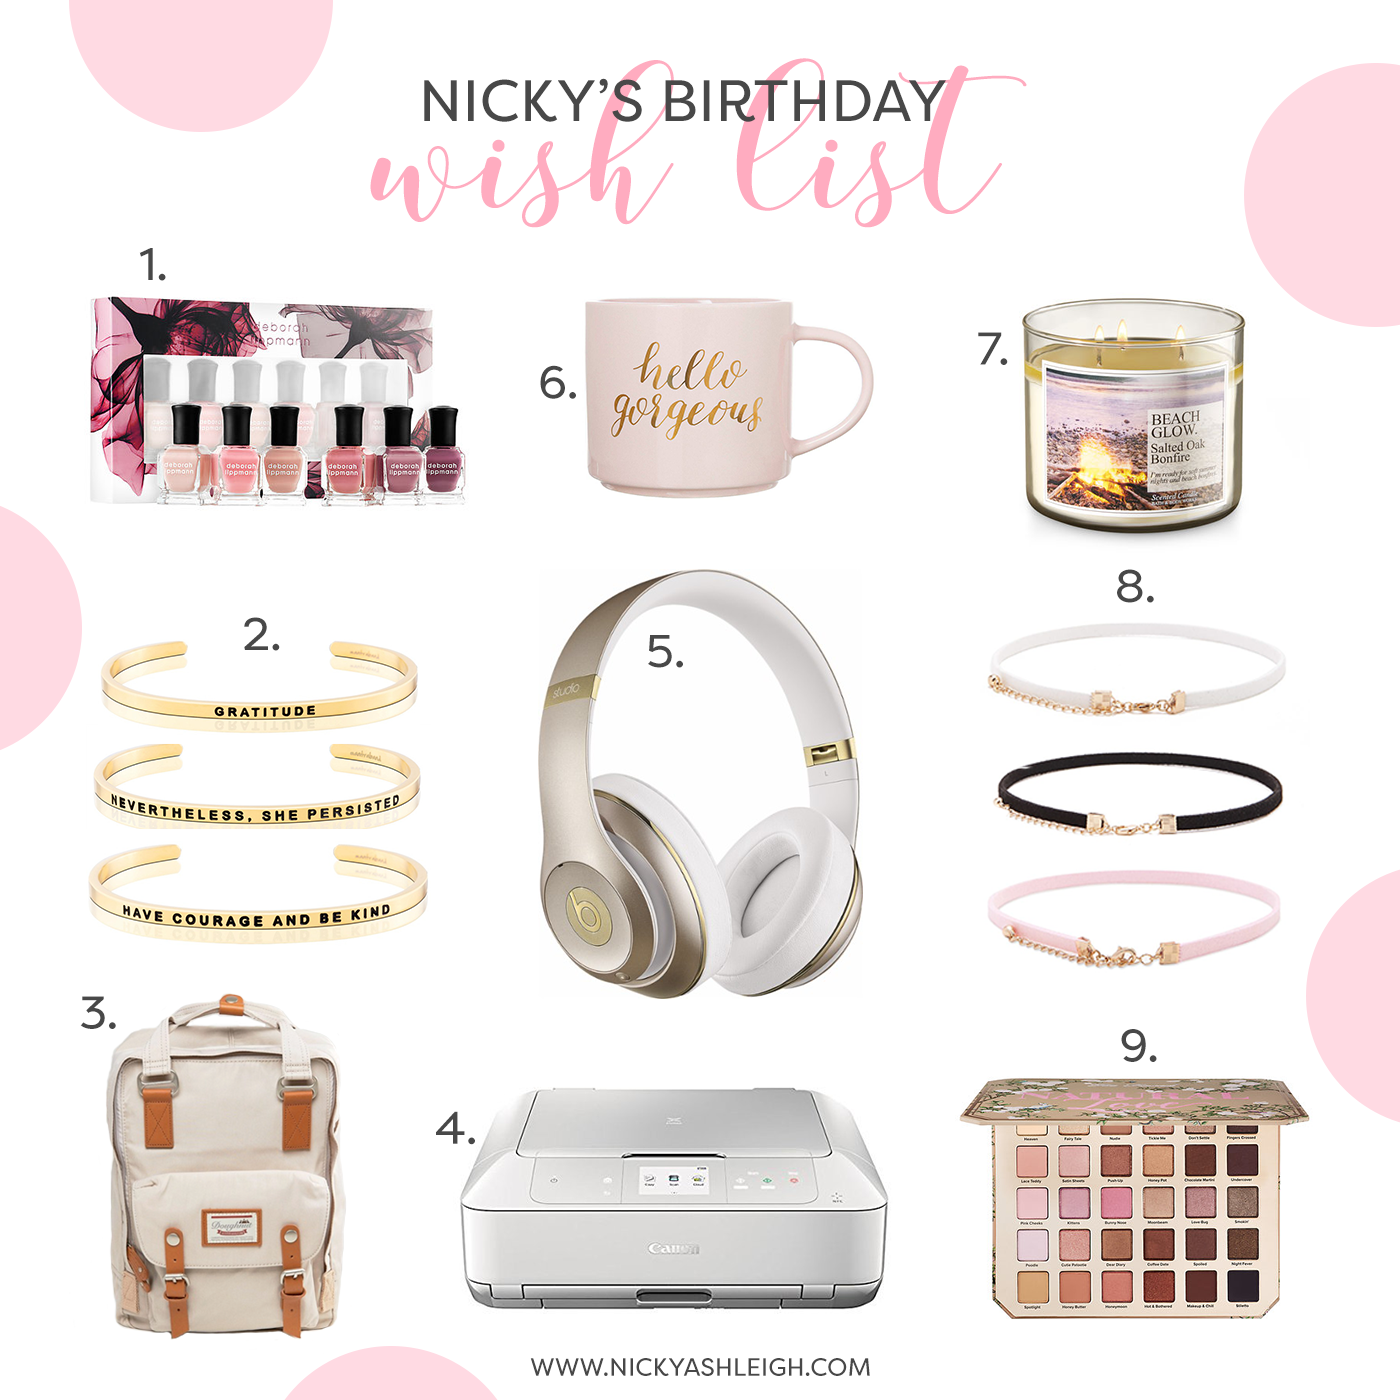 Nic's Birthday Wish List 2017